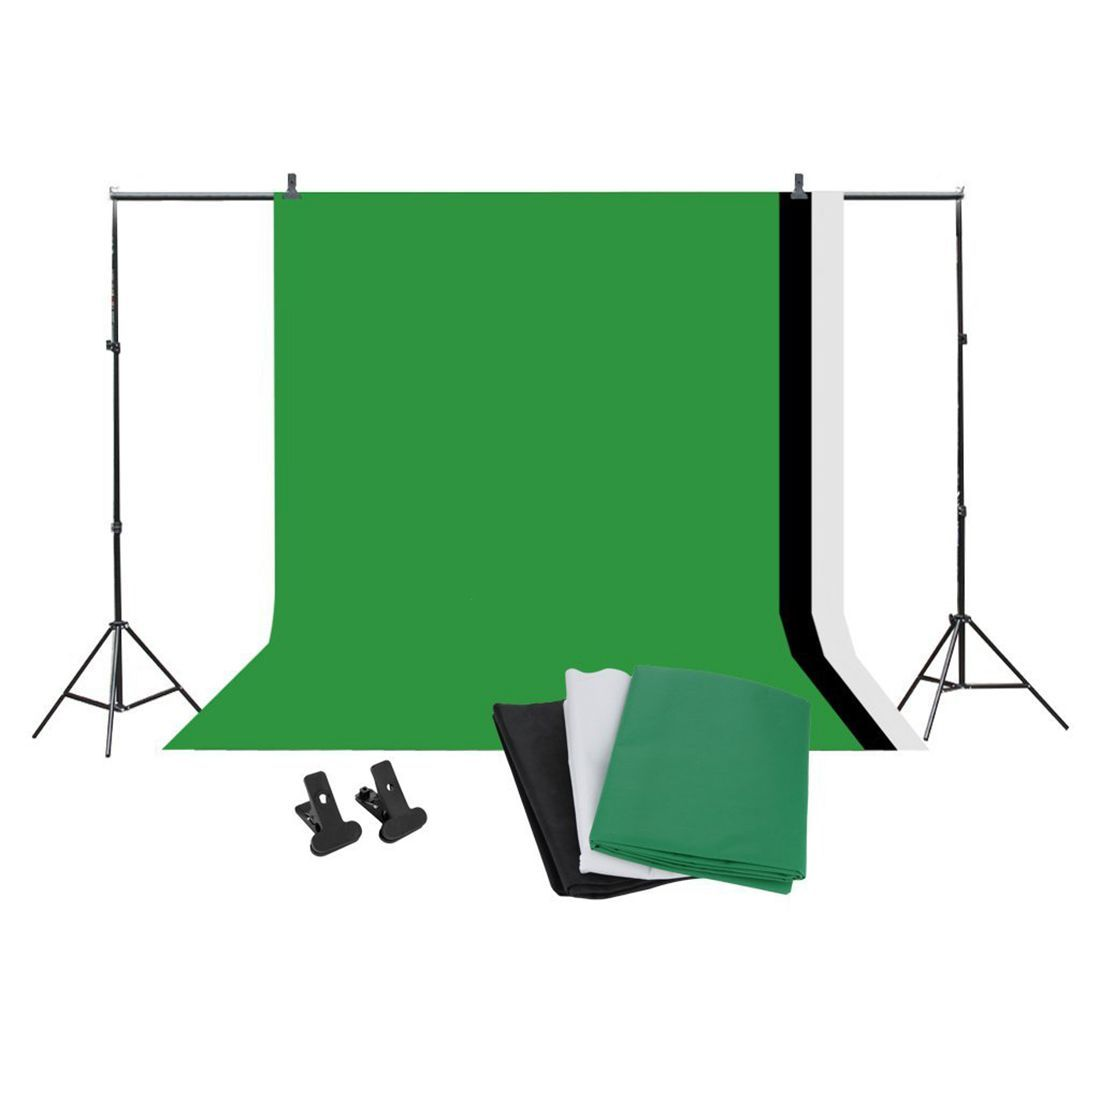 Professional Studio Background Stand Kit - 10x6.5ft Photo Backdrop Support Stand Kit + Backdrop Screen (Black,Green,White)